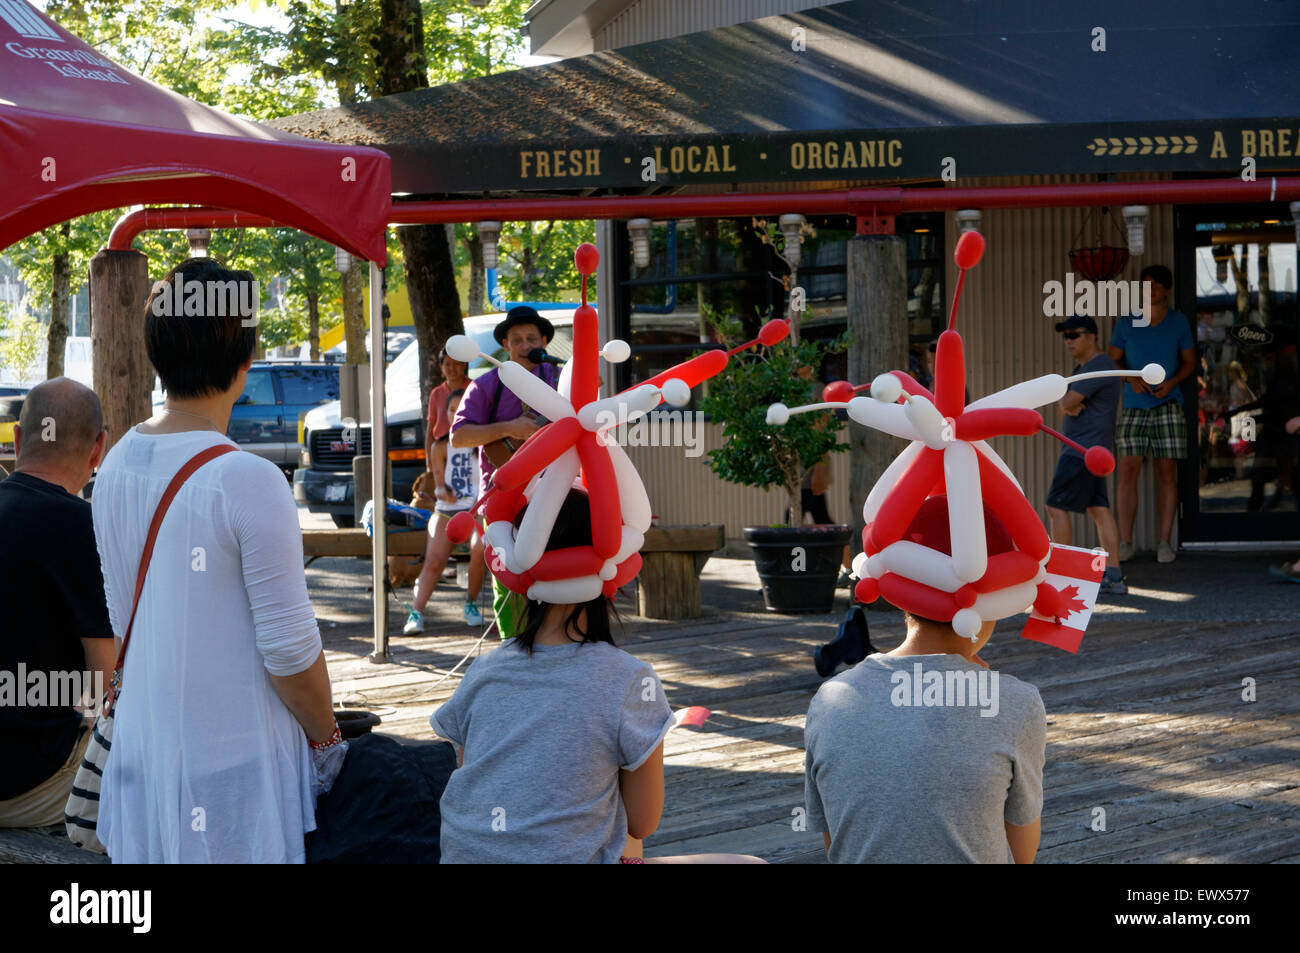 A busker entertains children at Canada Day celebrations on Granville Island in Vancouver, British Columbia, Canada - Stock Image